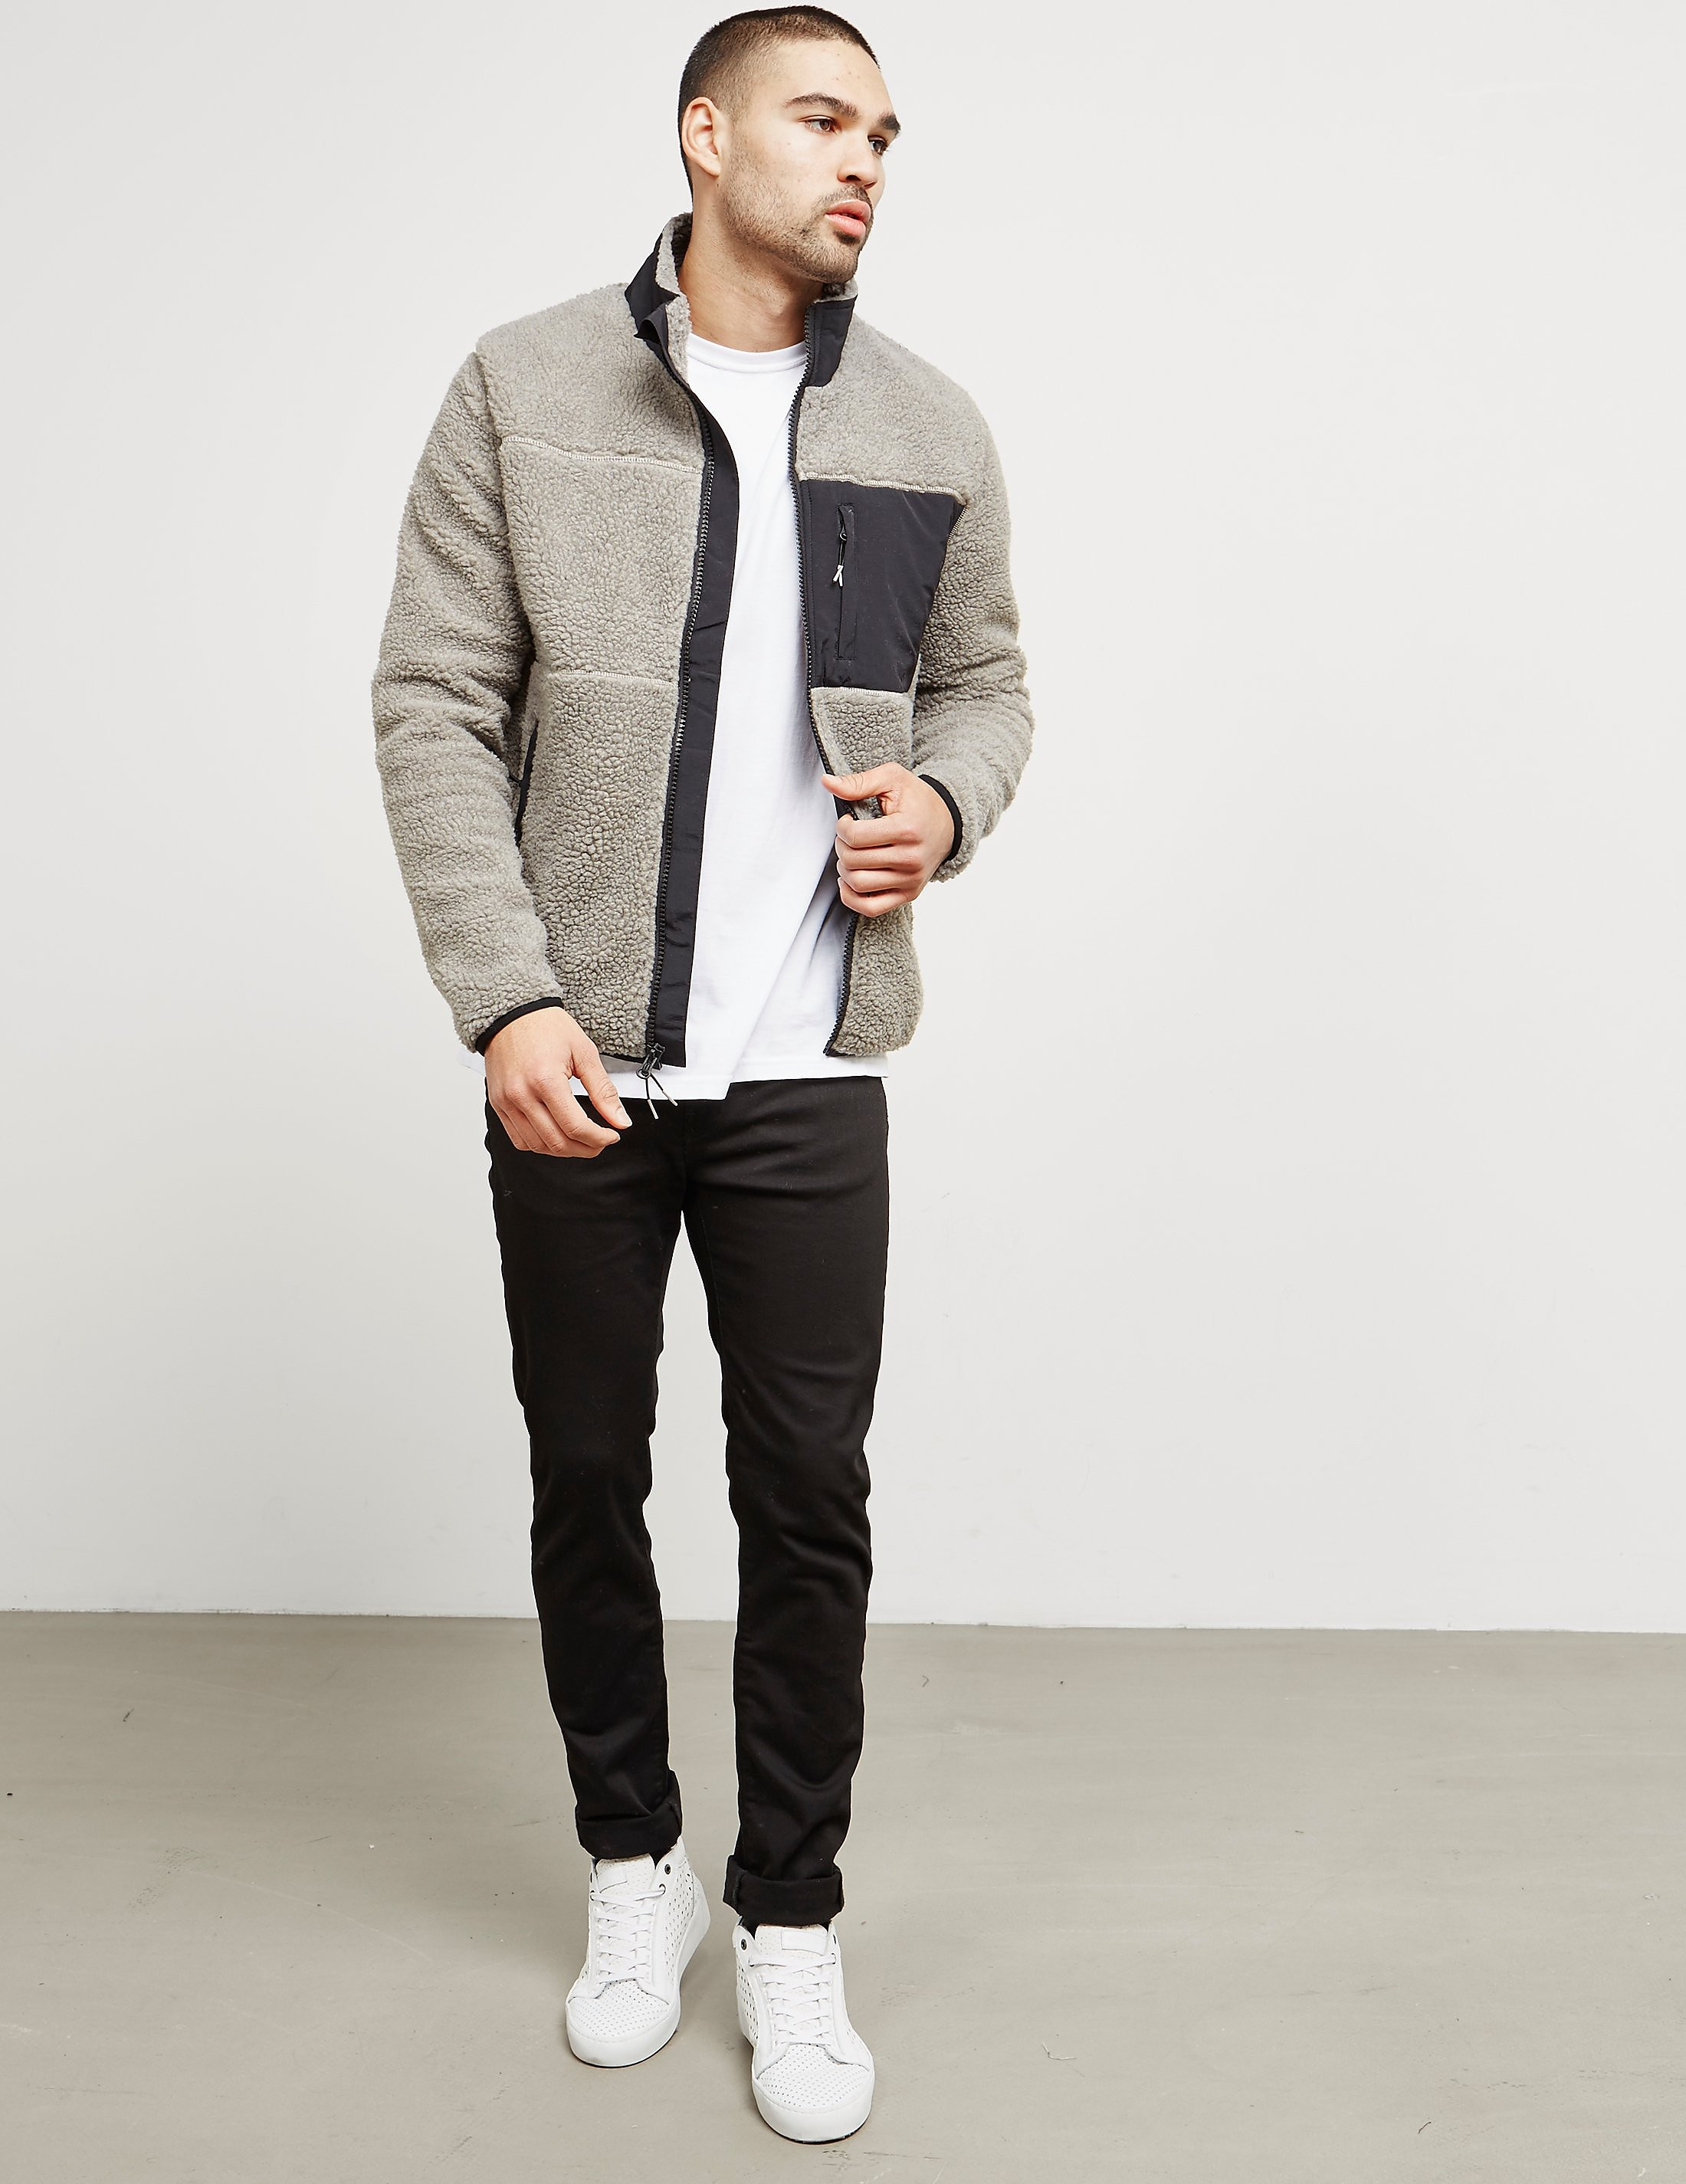 Penfield Mattawa Sherp Full Zip Sweatshirt